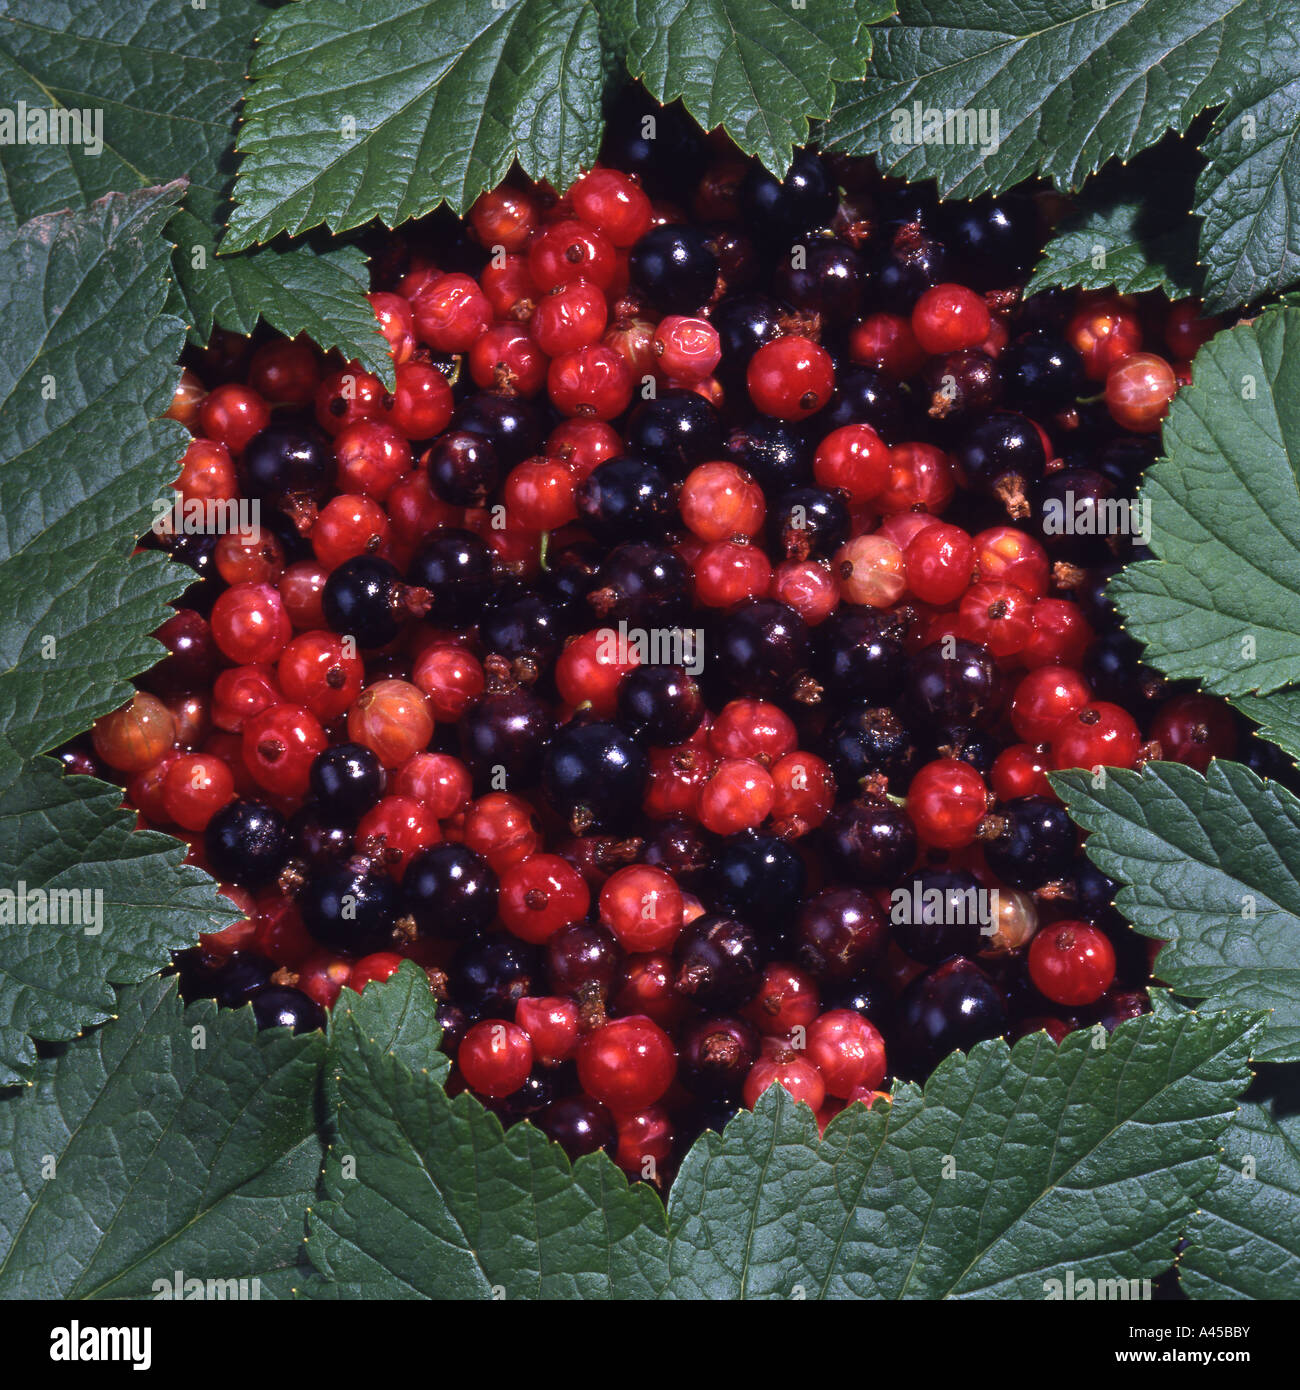 Redcurrants and Blackcurrants - Stock Image